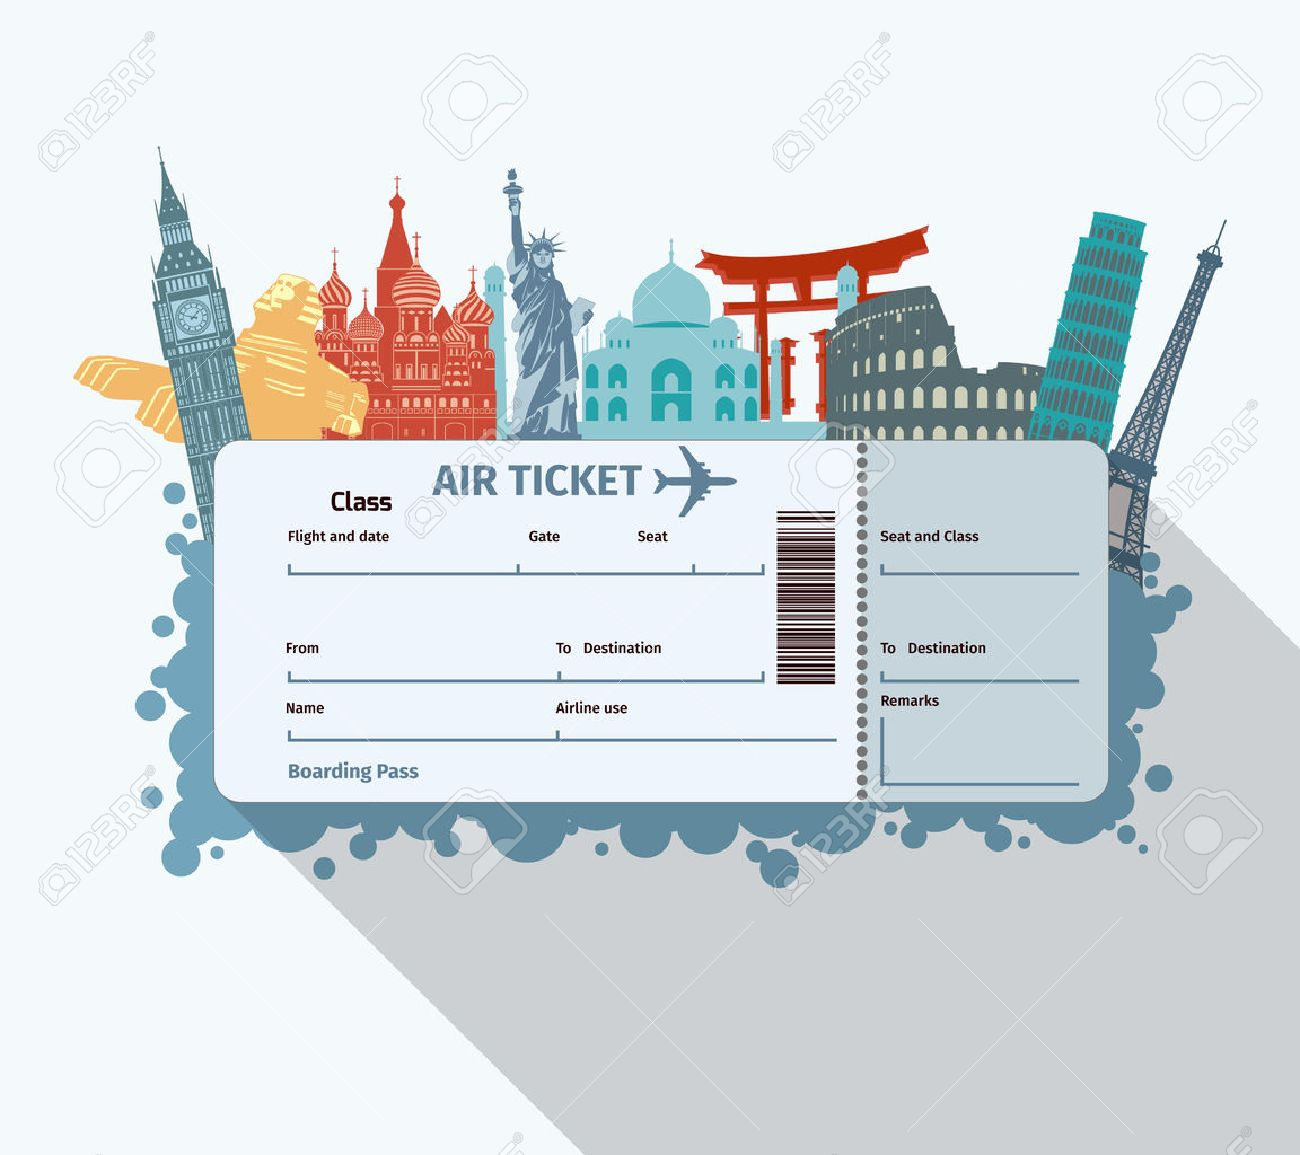 http://previews.123rf.com/images/macrovector/macrovector1410/macrovector141000262/32133382-Airplane-travel-ticket-with-world-famous-landmarks-icons-vector-illustration-Stock-Vector.jpg